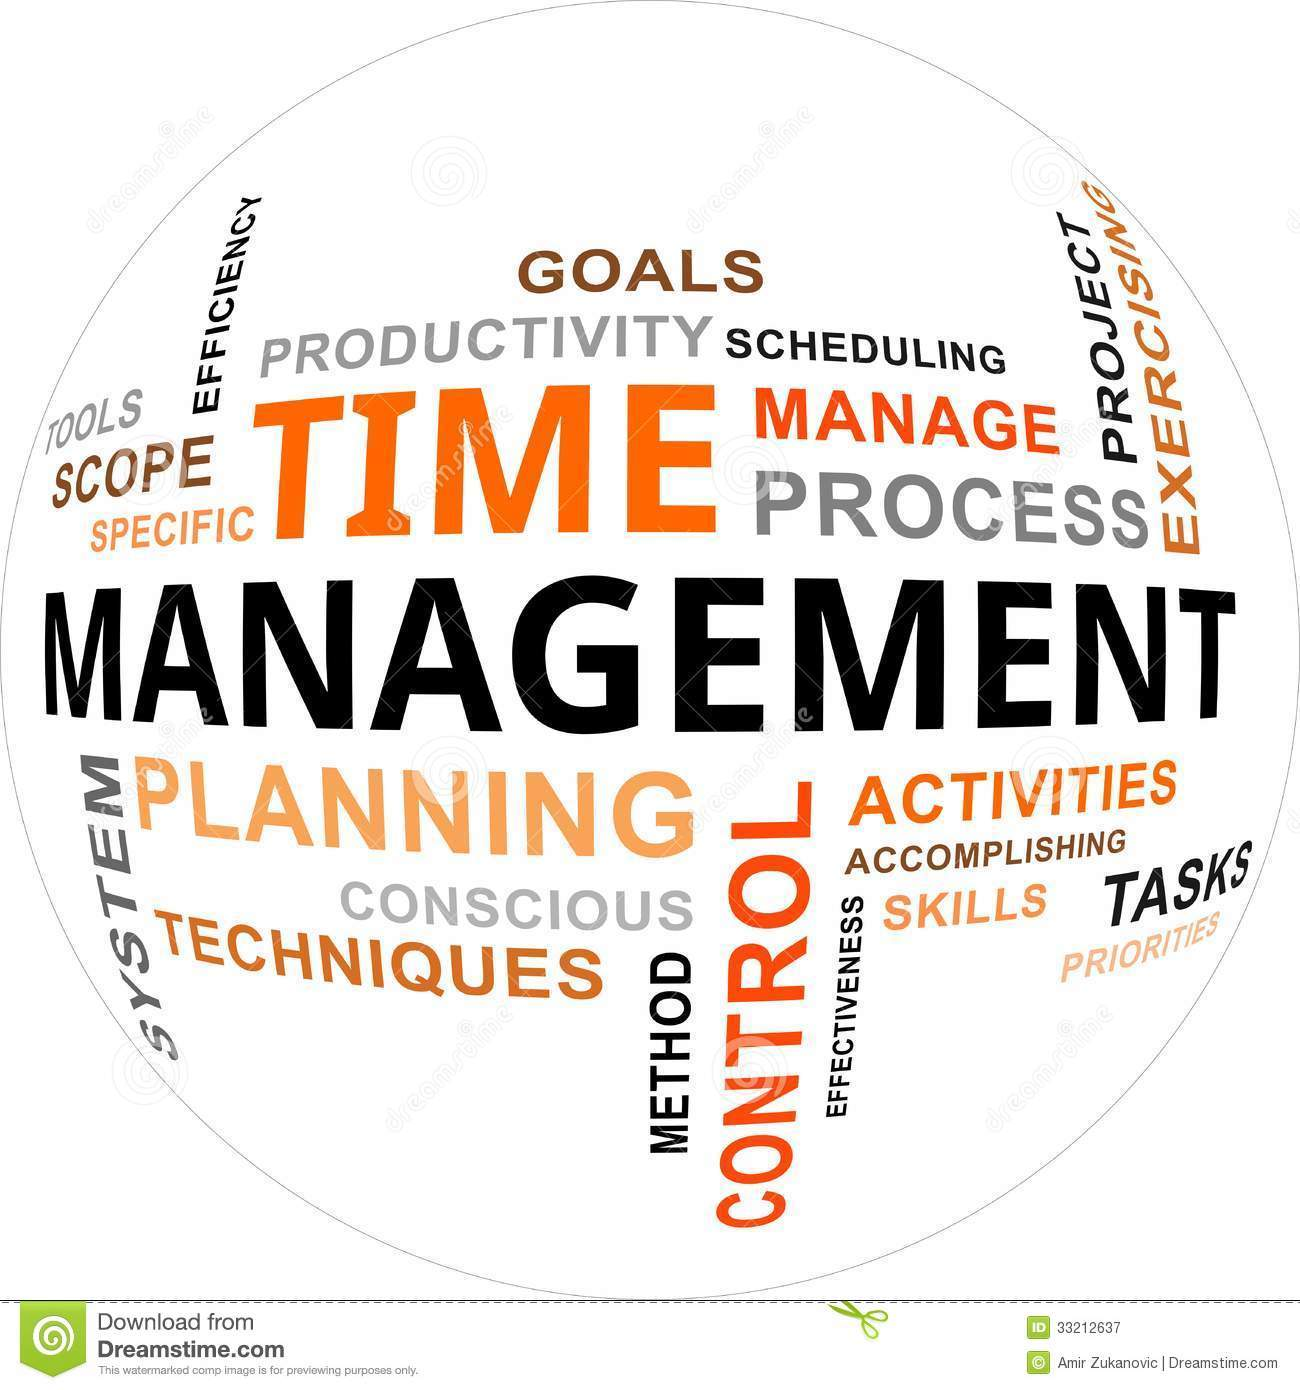 Time management as a university student easyuni forums word cloud time management related items 33212637g1300x1390 140 kb altavistaventures Images